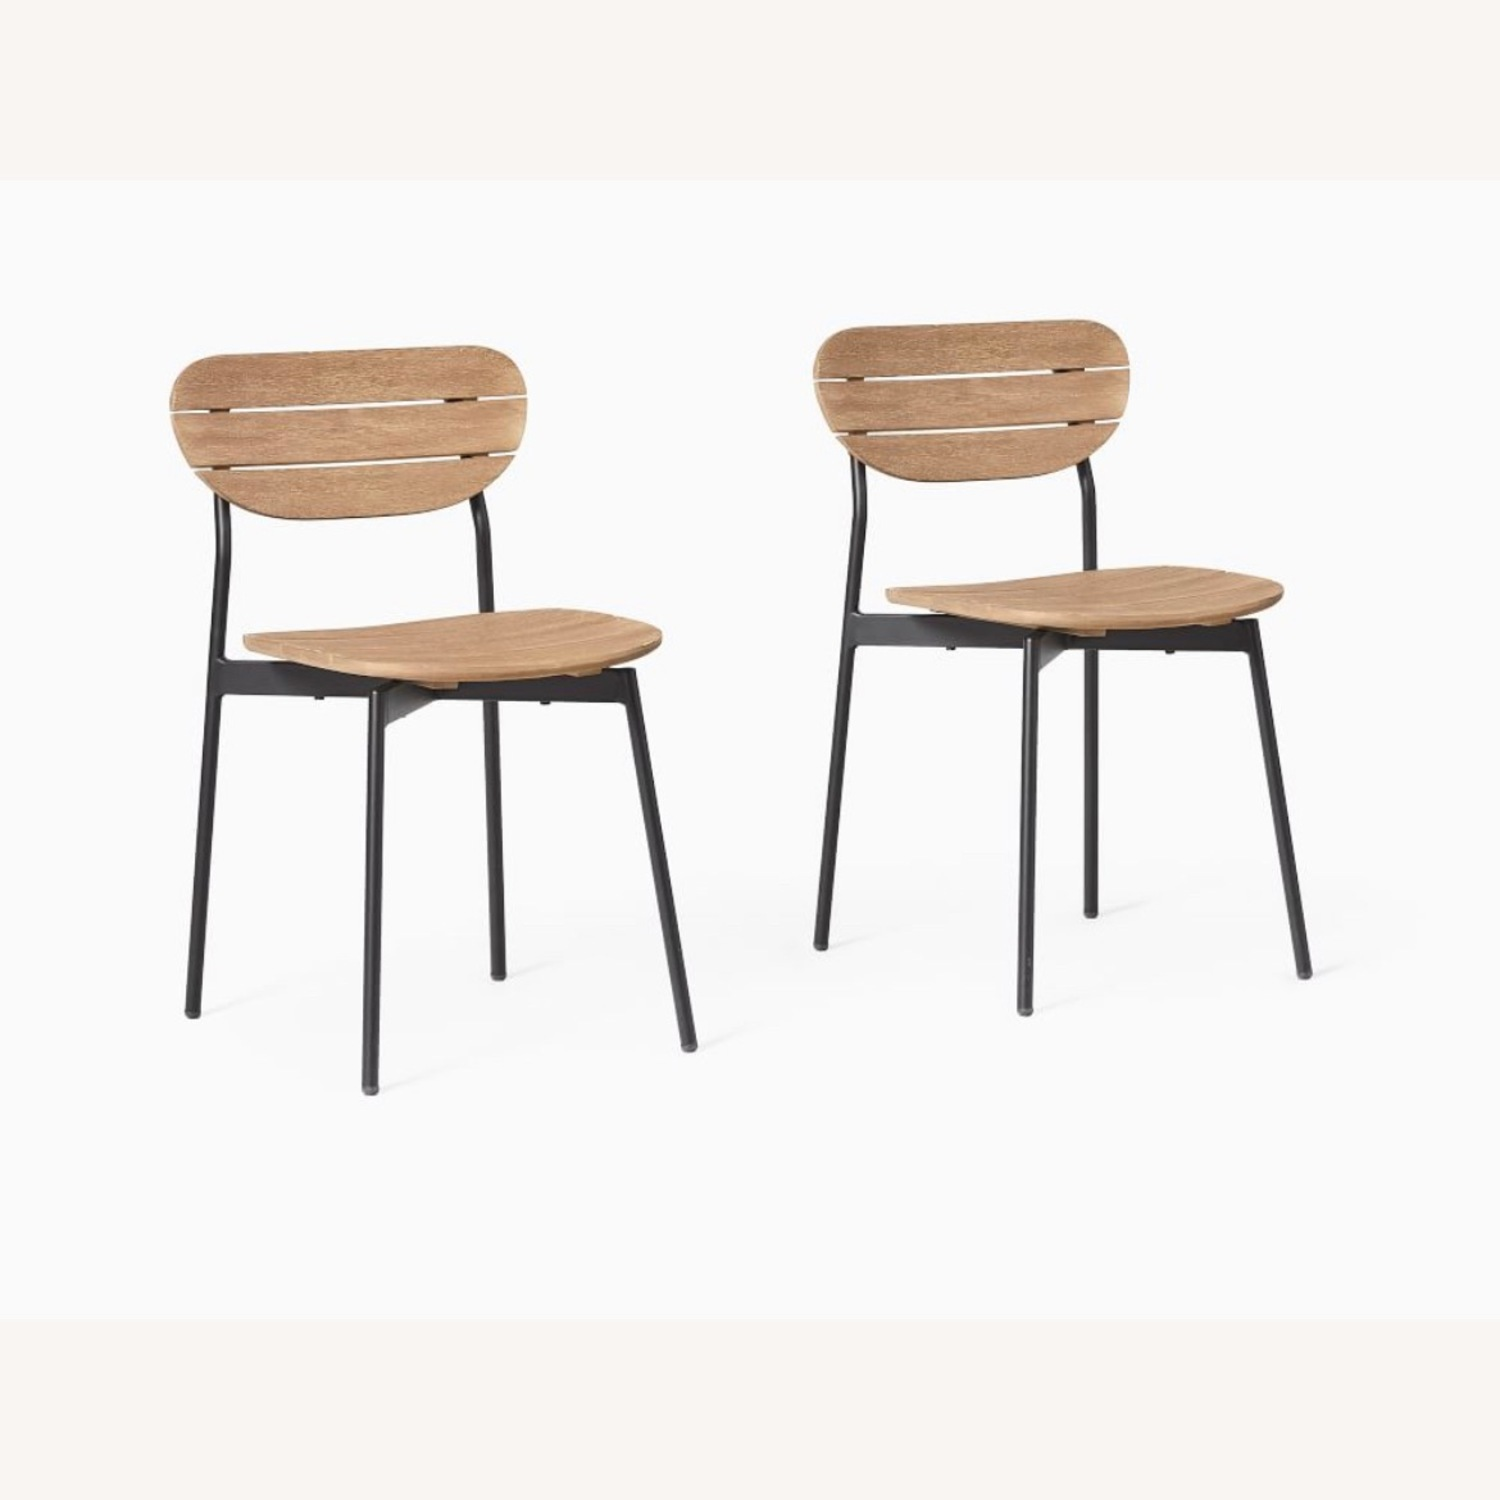 West Elm Frame Outdoor Set of 2 Dining Chairs - image-1